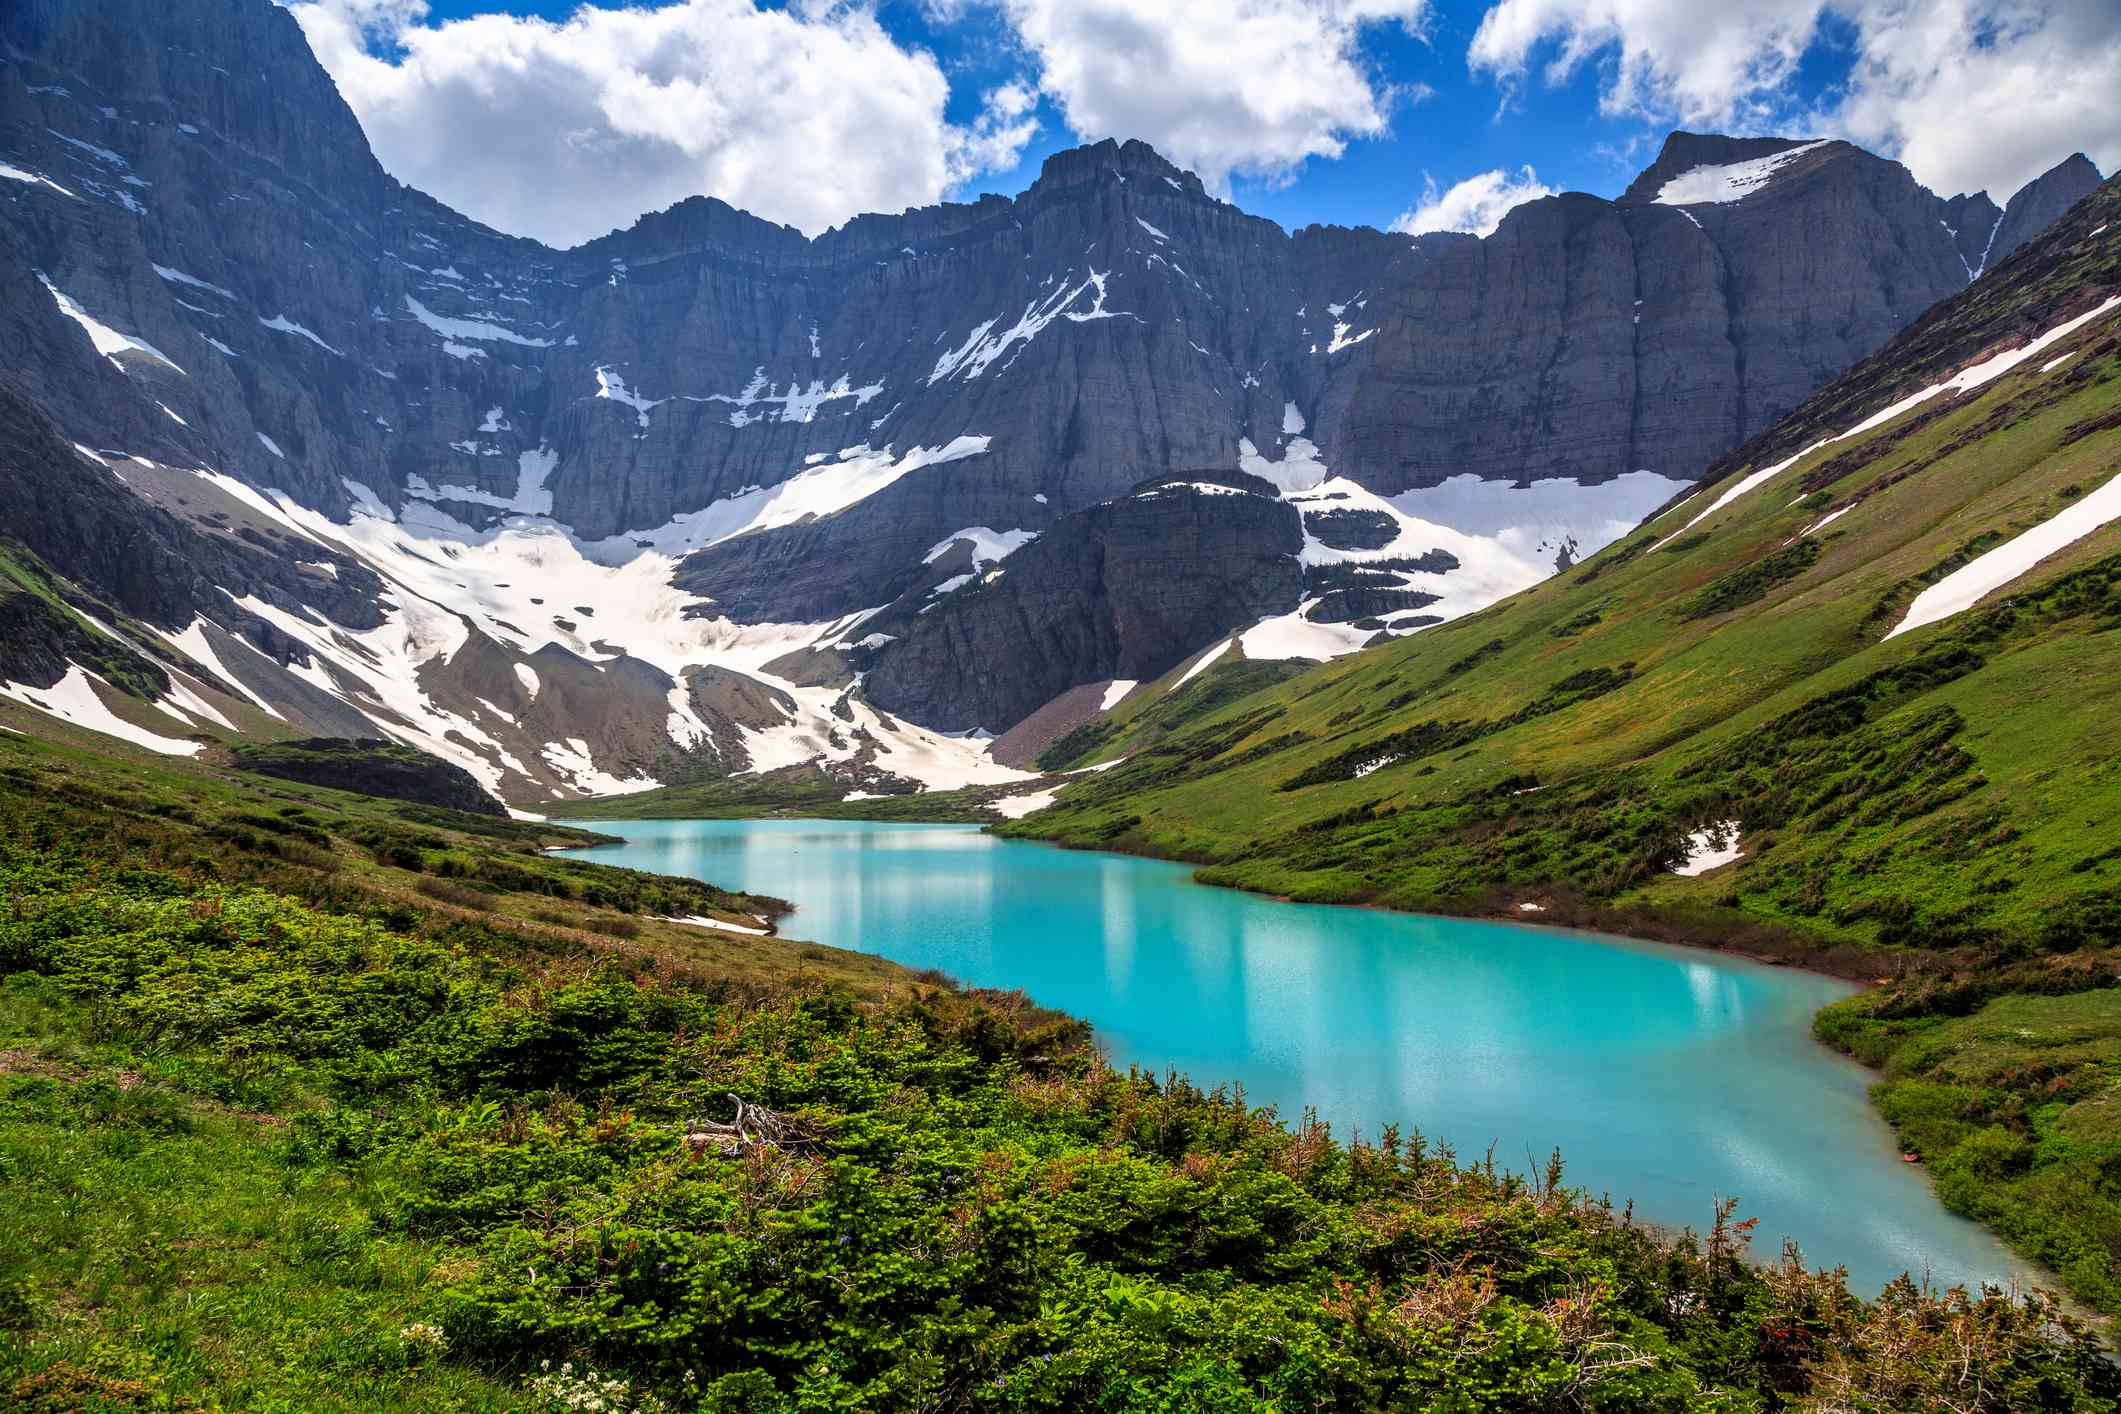 Cracker Lake and surrounding mountains in Glacier National Park